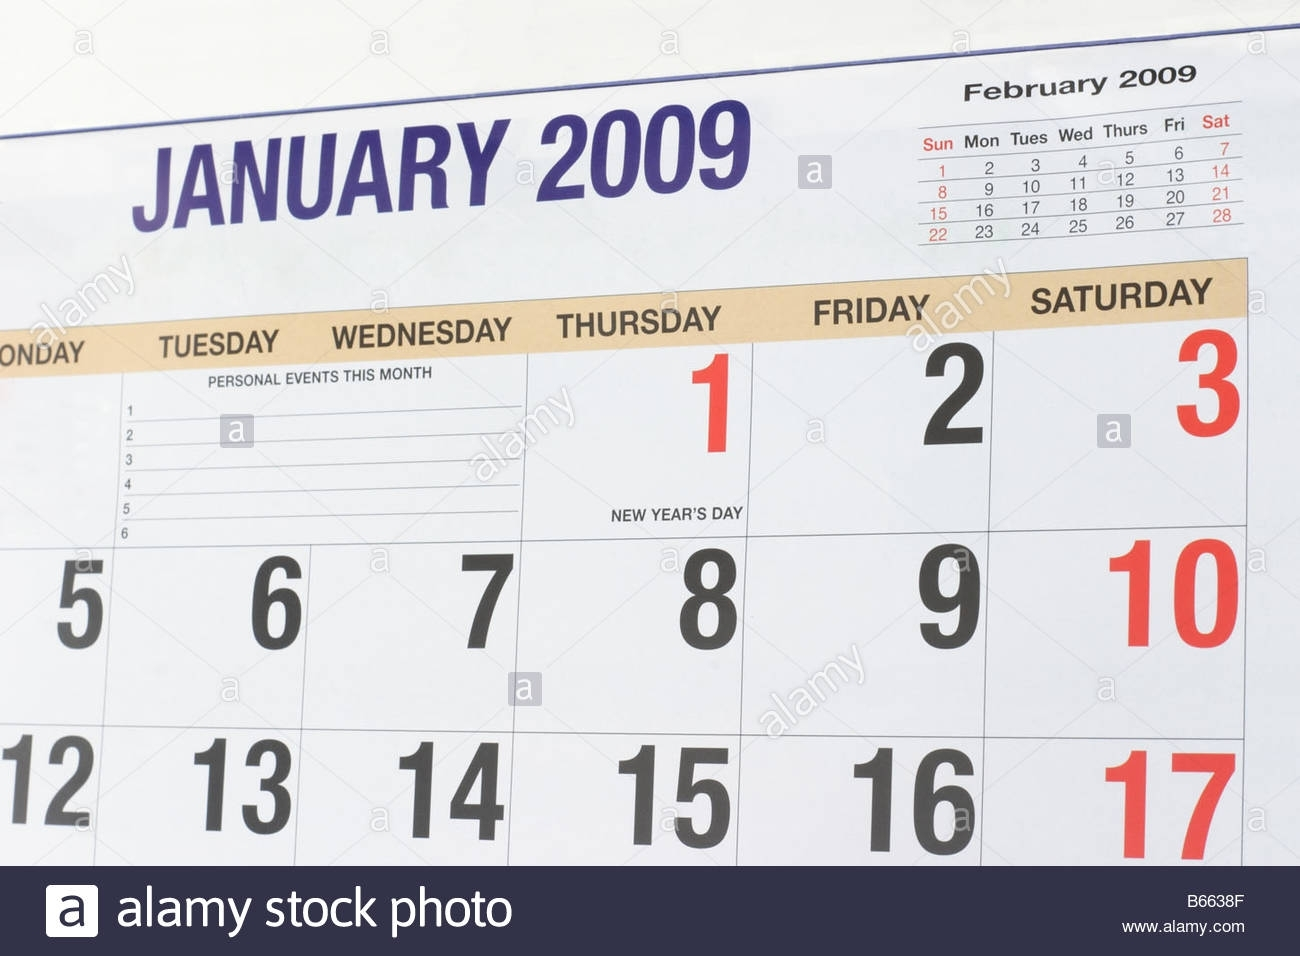 Calendar 2009 Showing Month Of January Stock Photo: 21032607